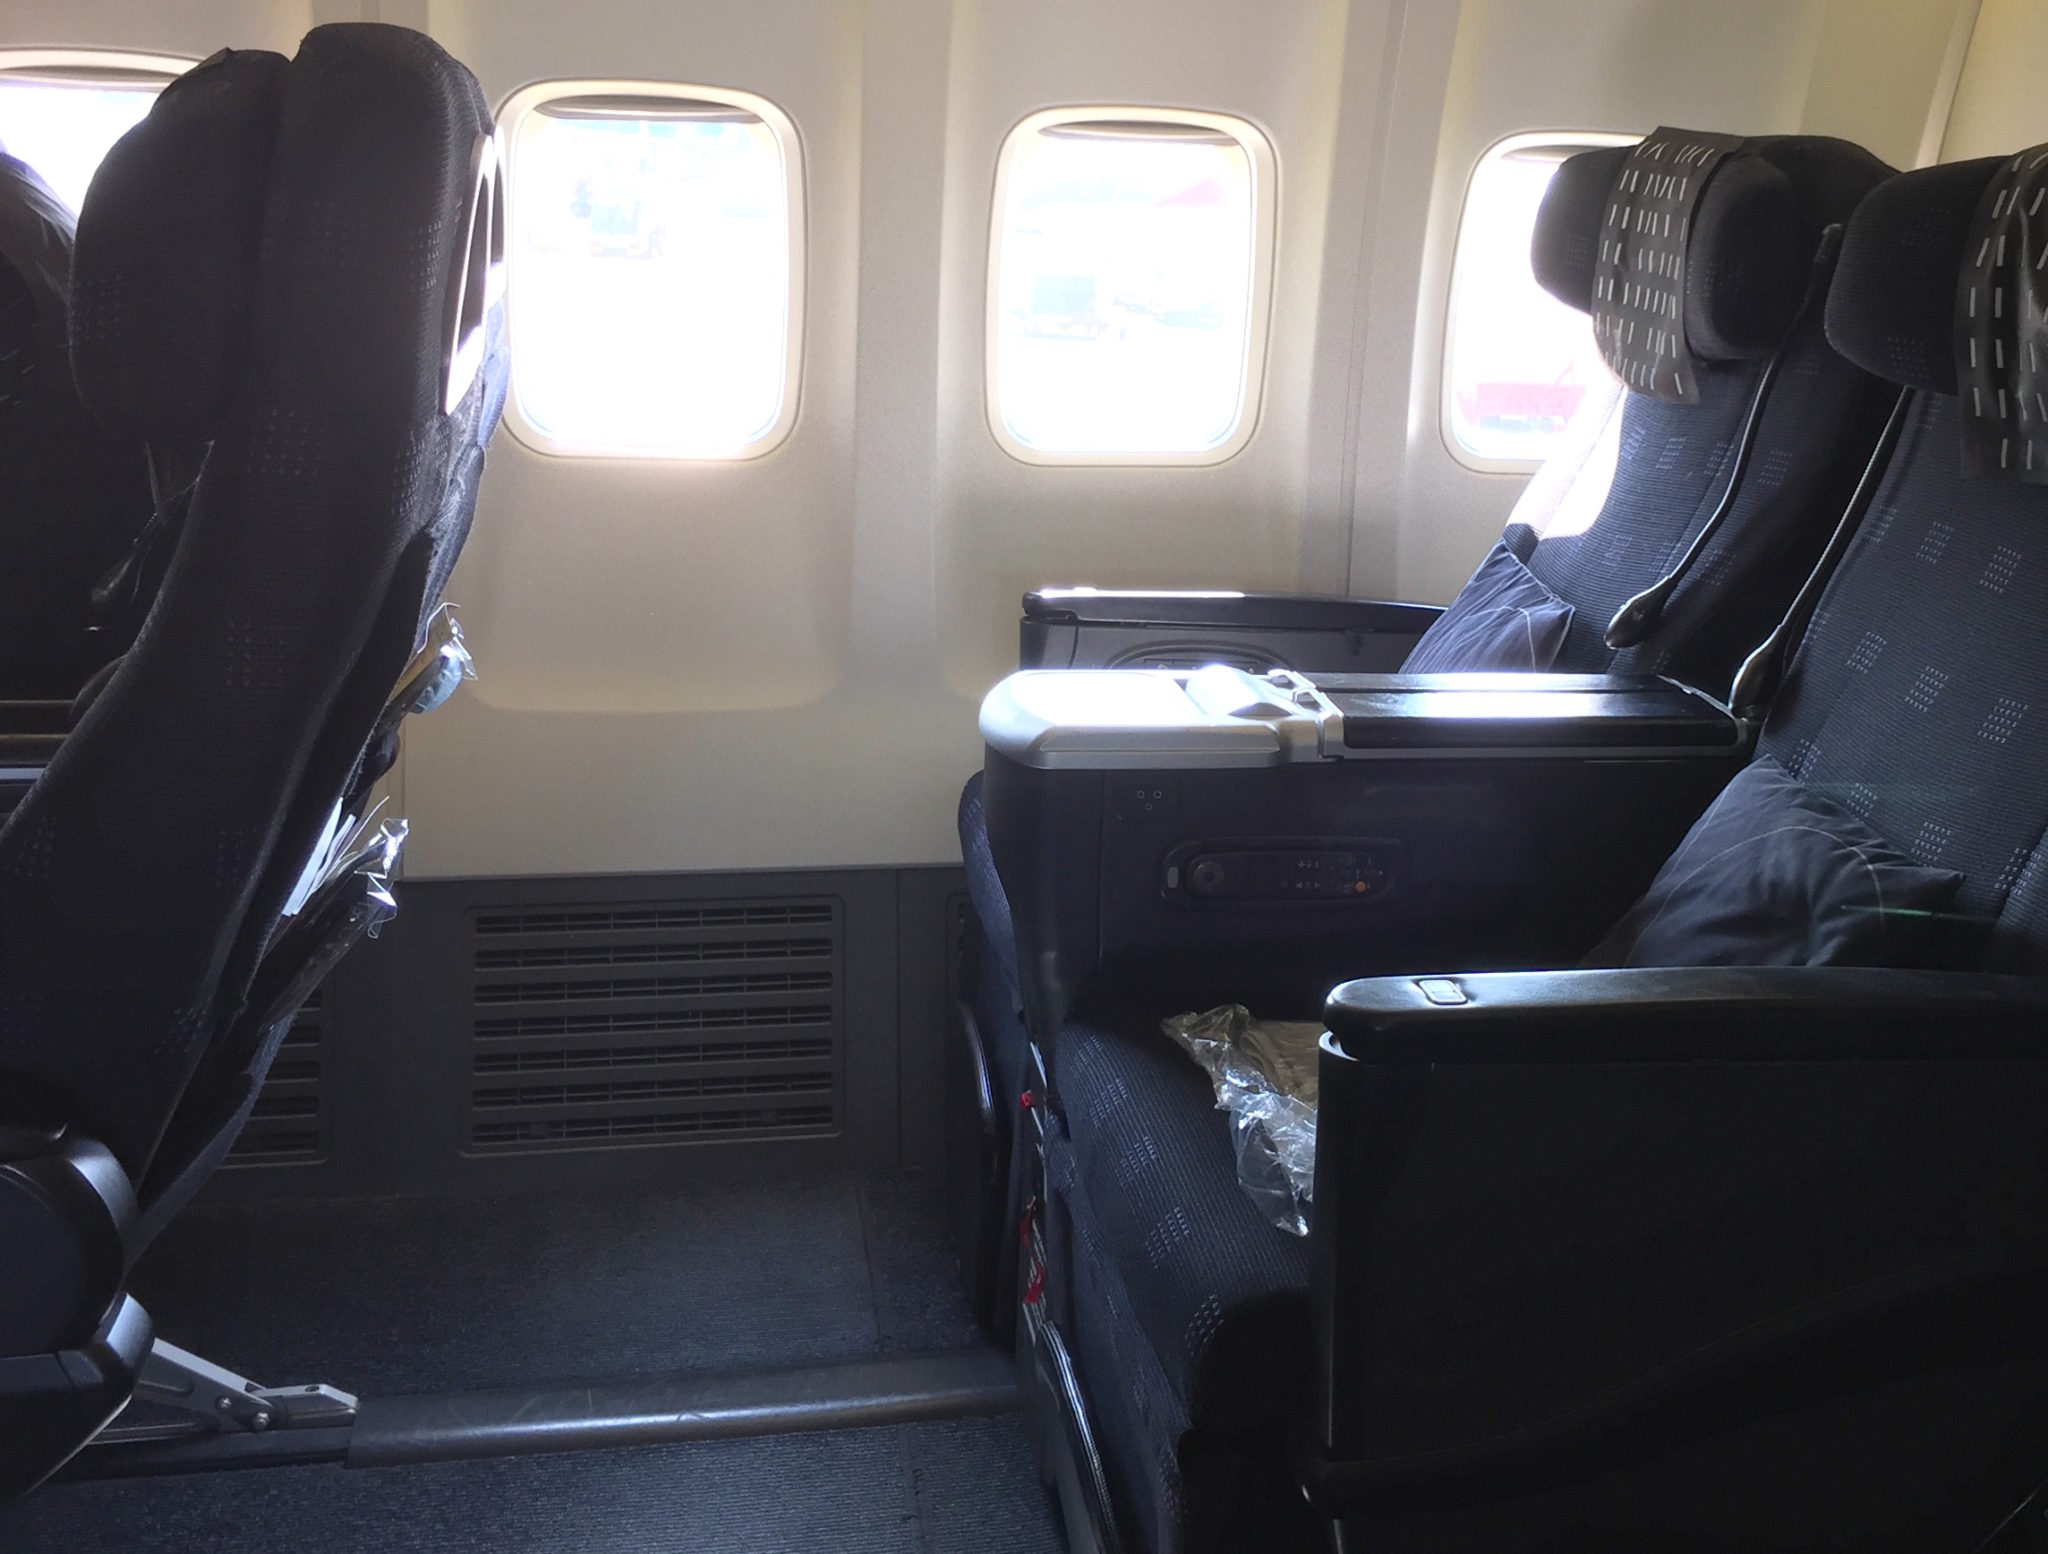 JAL's business class seating on its international 737 fleet is among the world's most generous. Image John Walton